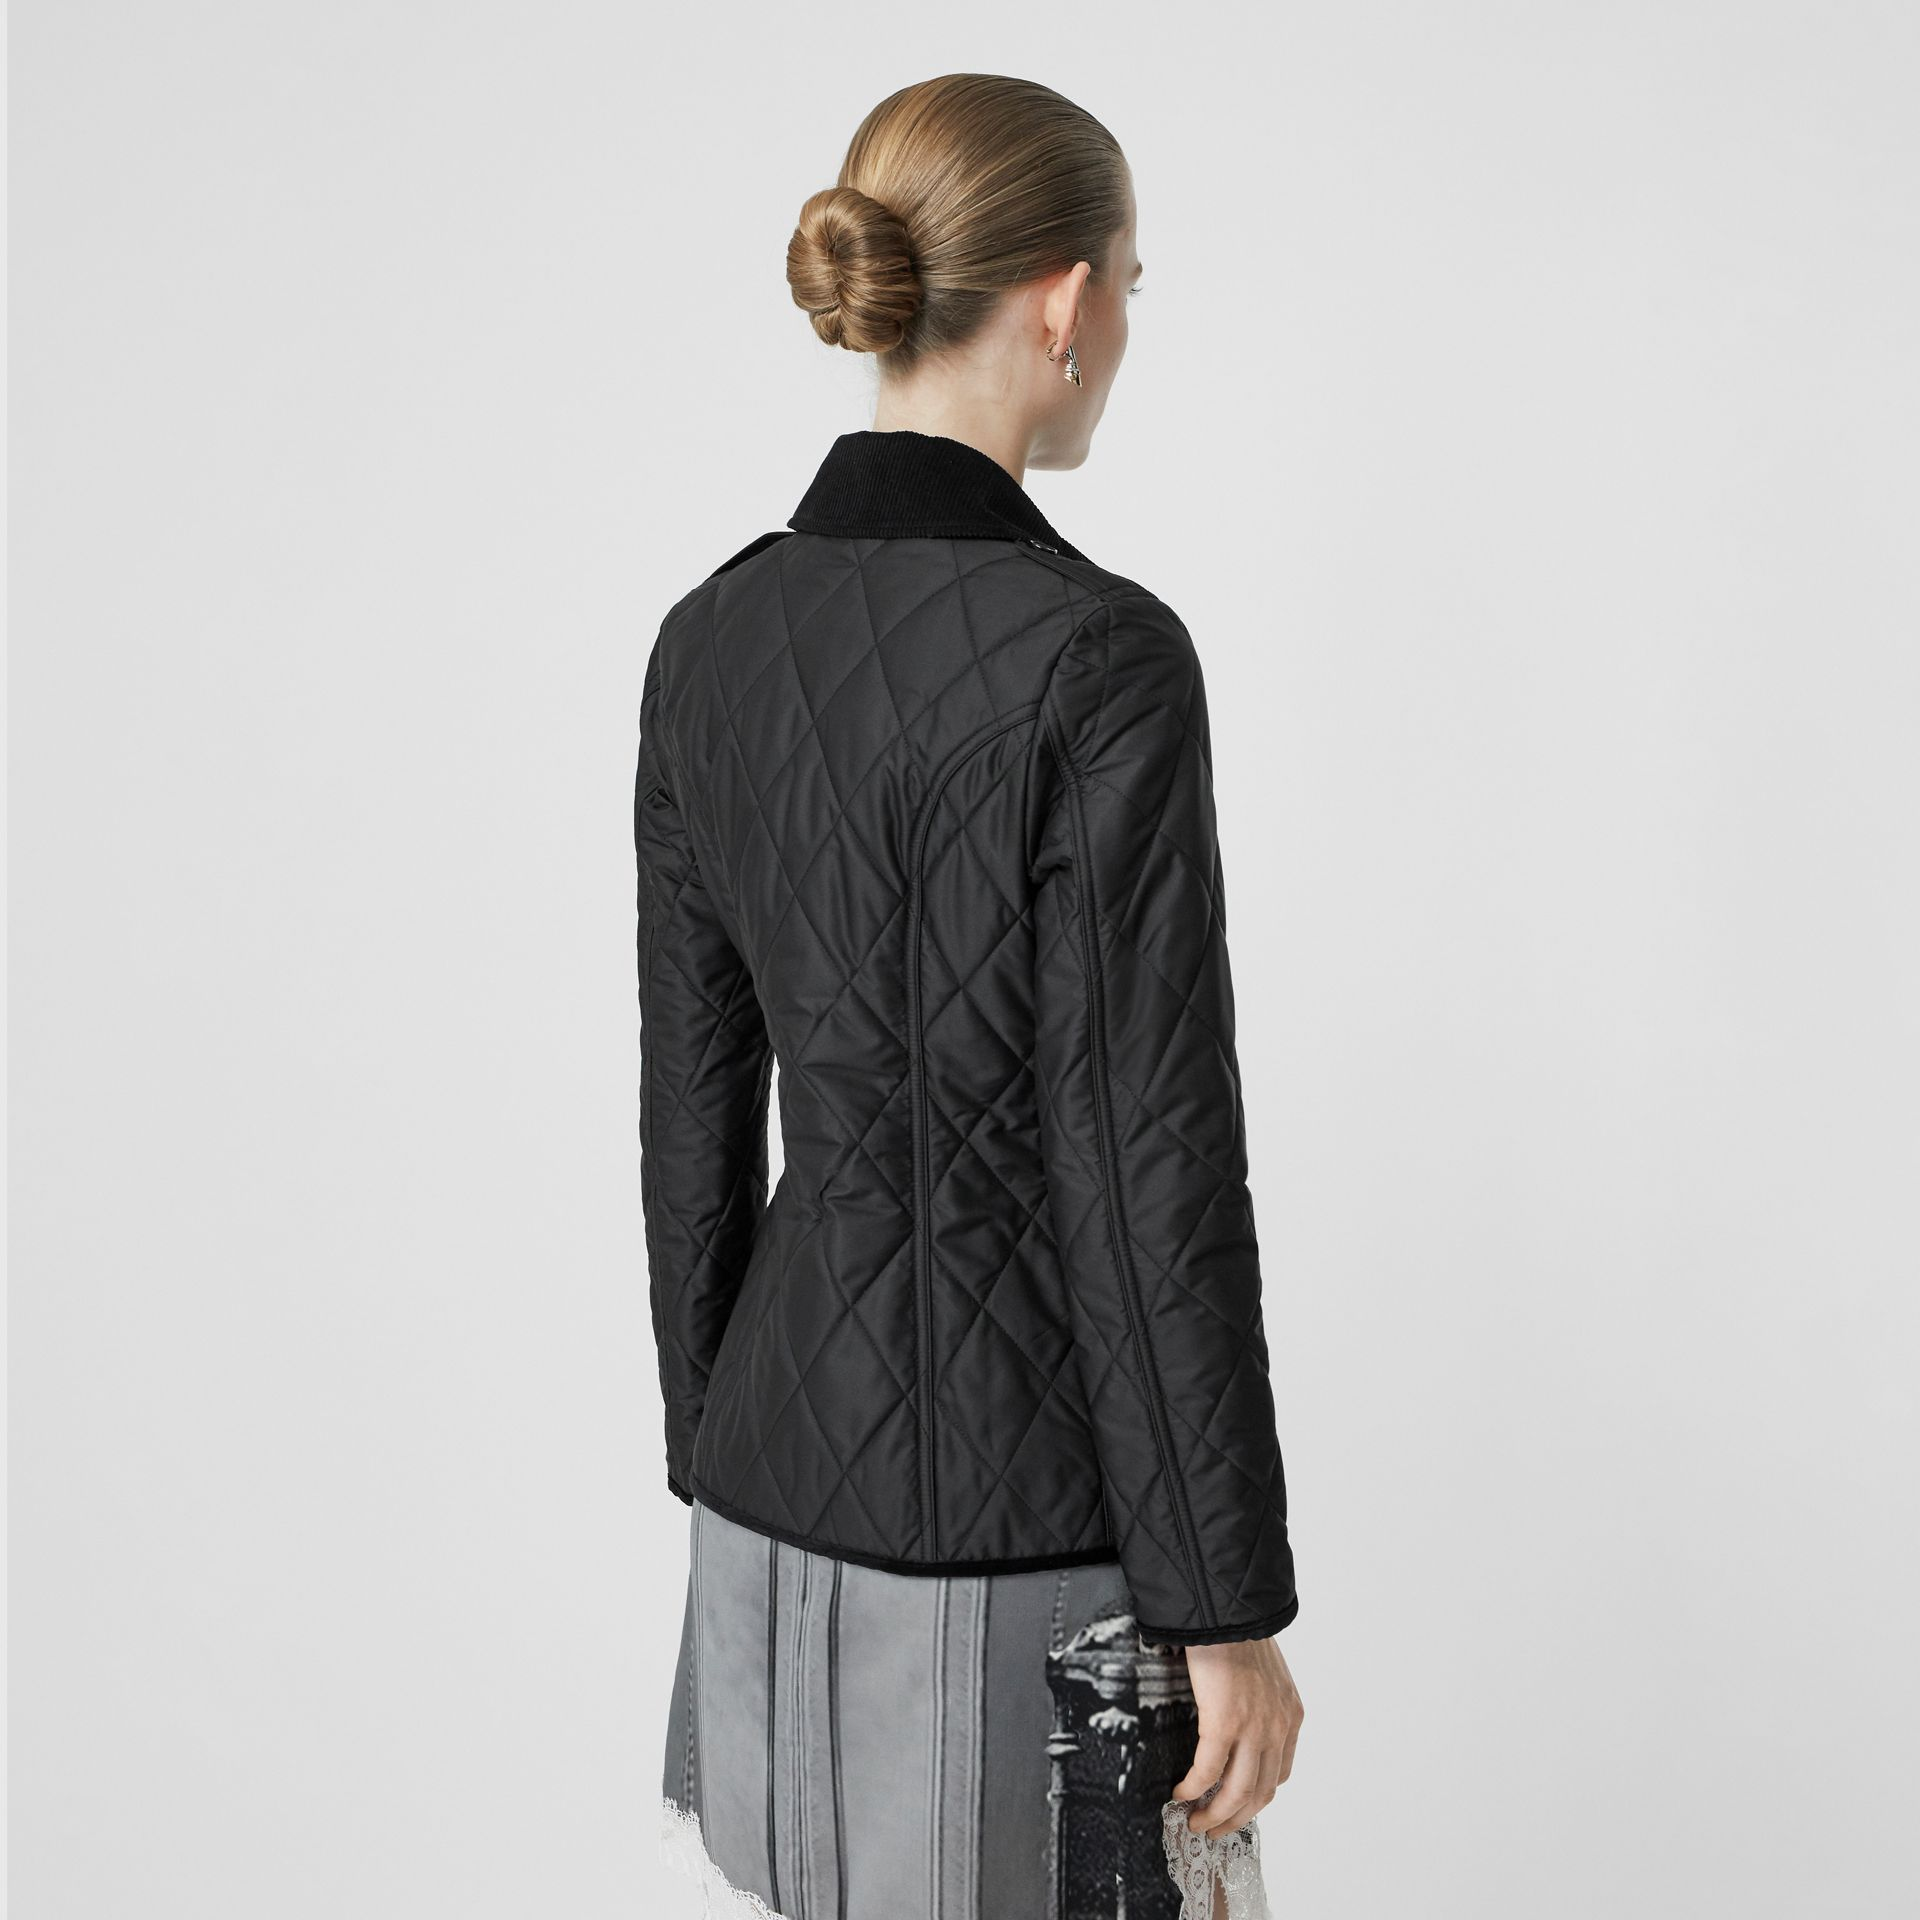 Monogram Motif Diamond Quilted Jacket in Black - Women | Burberry Singapore - gallery image 2